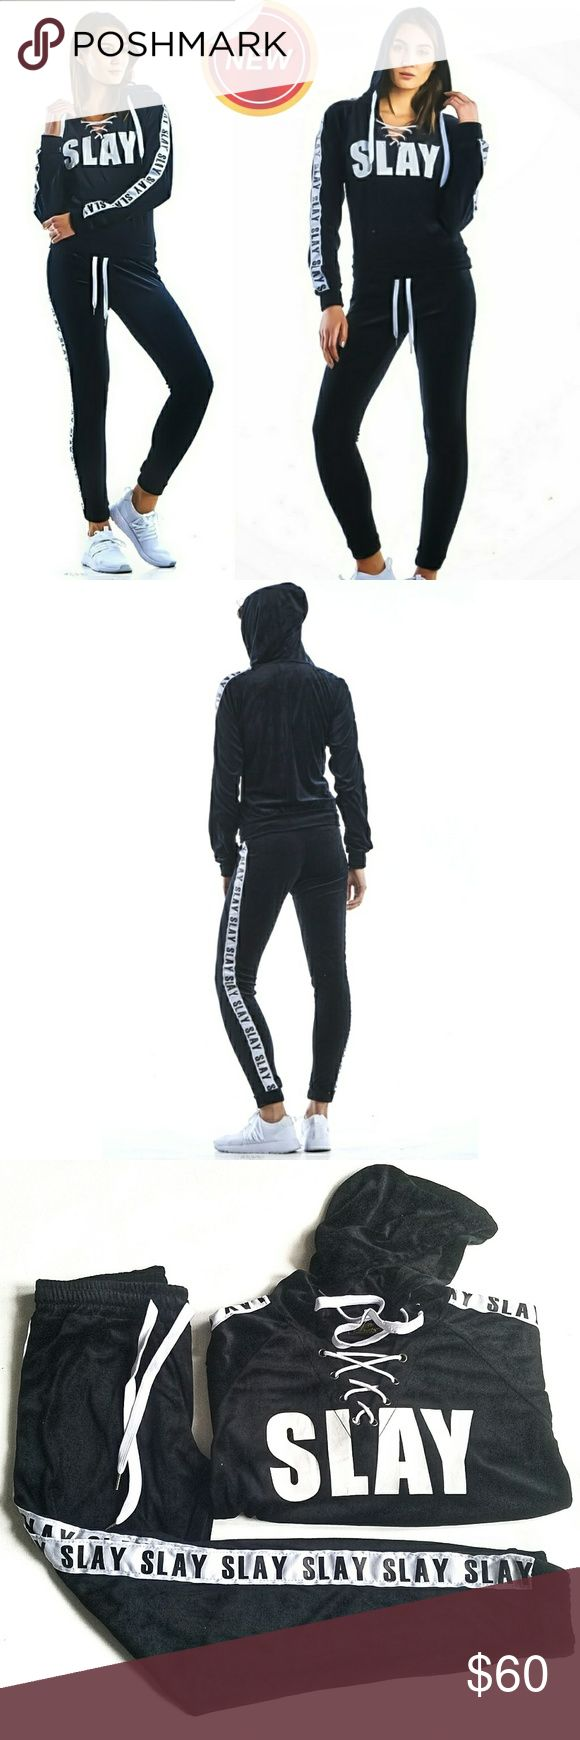 Slay Jogging Suit 2 pc Velour jogging suit. Available in both Black and Pink  *Lace Up Hoody with Slay along both arms. Front kangaroo pocket. *Pants have elastic, drawstring waist and banded ankle. Slay goes down the side of each leg.  Sold as a set Only, cannot mix top/bottom sizes  Tantalyzn Apparel is now available in the Wholesale Portal  Bundle and Save More Pants Track Pants & Joggers